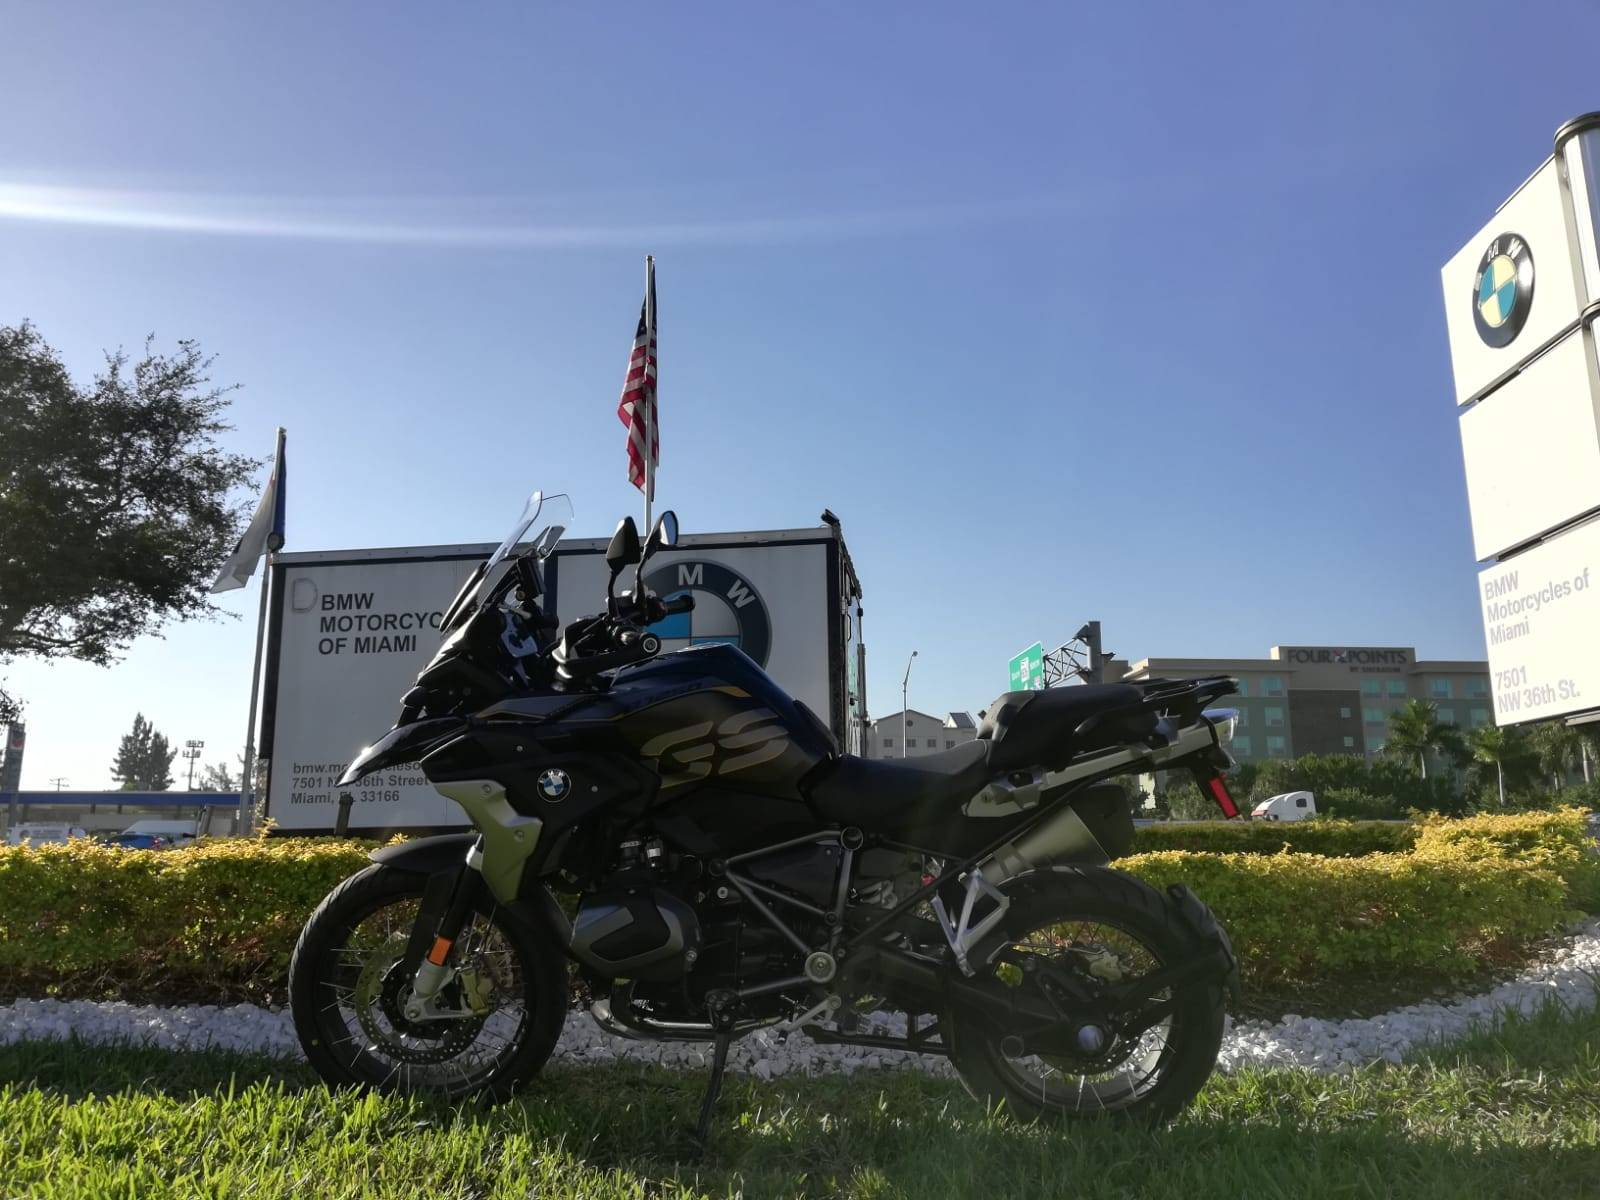 New 2019 BMW R 1250 GS for sale, BMW R 1250GS for sale, BMW Motorcycle GS, new BMW GS, Spirit of GS, BMW Motorcycles of Miami, Motorcycles of Miami, Motorcycles Miami, New Motorcycles, Used Motorcycles, pre-owned. #BMWMotorcyclesOfMiami #MotorcyclesOfMiami. - Photo 10